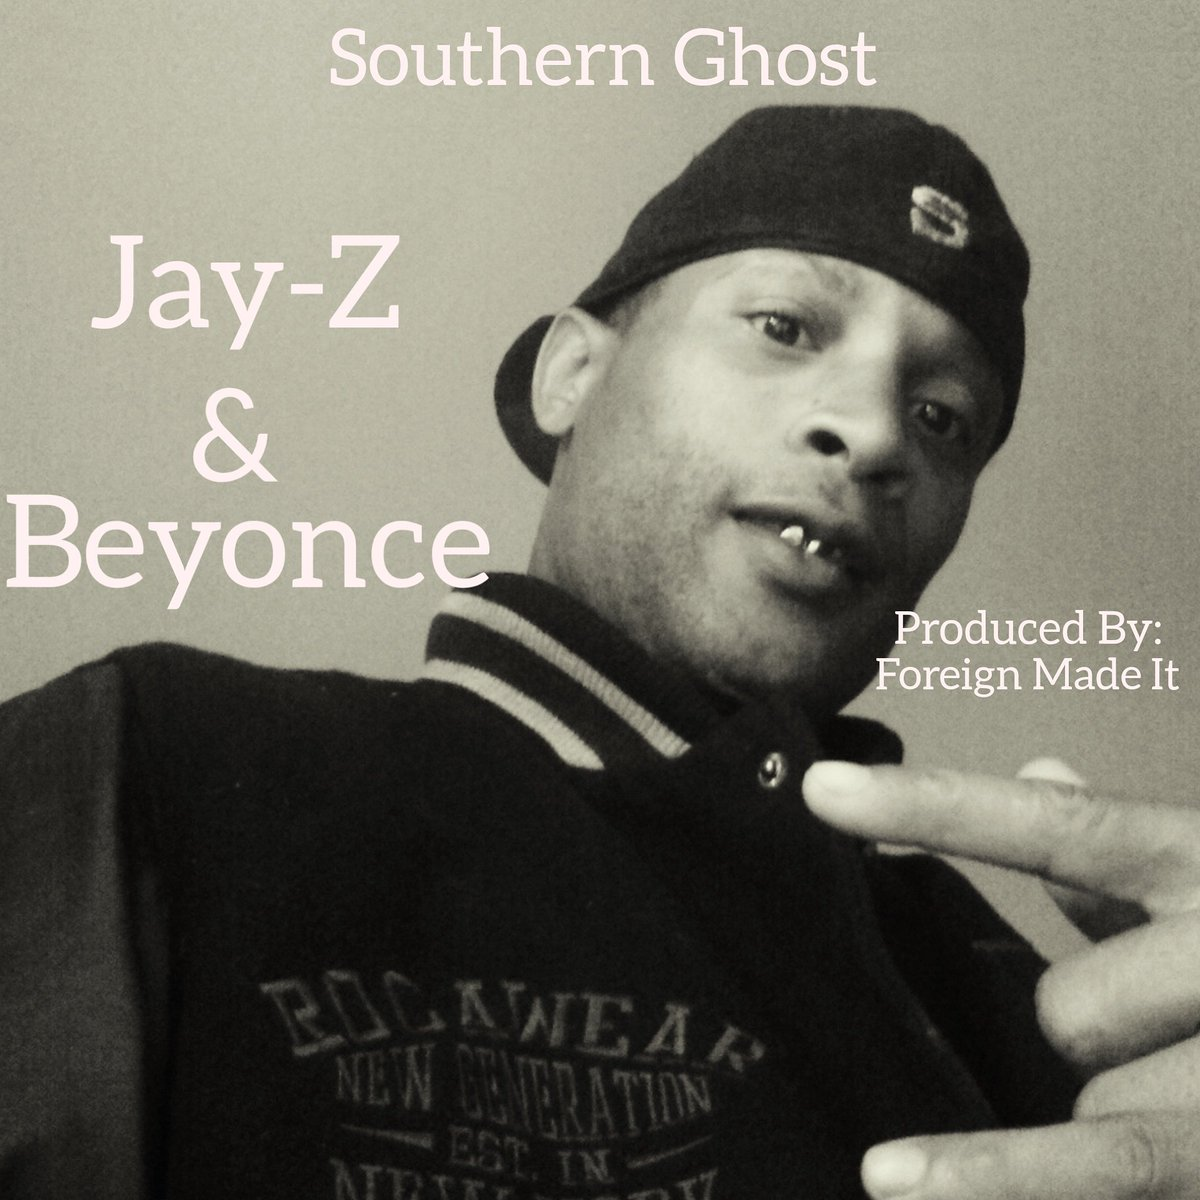 In The Next Few Days I Will Be Exclusively Dropping My New Track #jay-z &amp; beyoncé On My #YouTube Channel Stay Tuned.<br>http://pic.twitter.com/ubFYNqNcwP